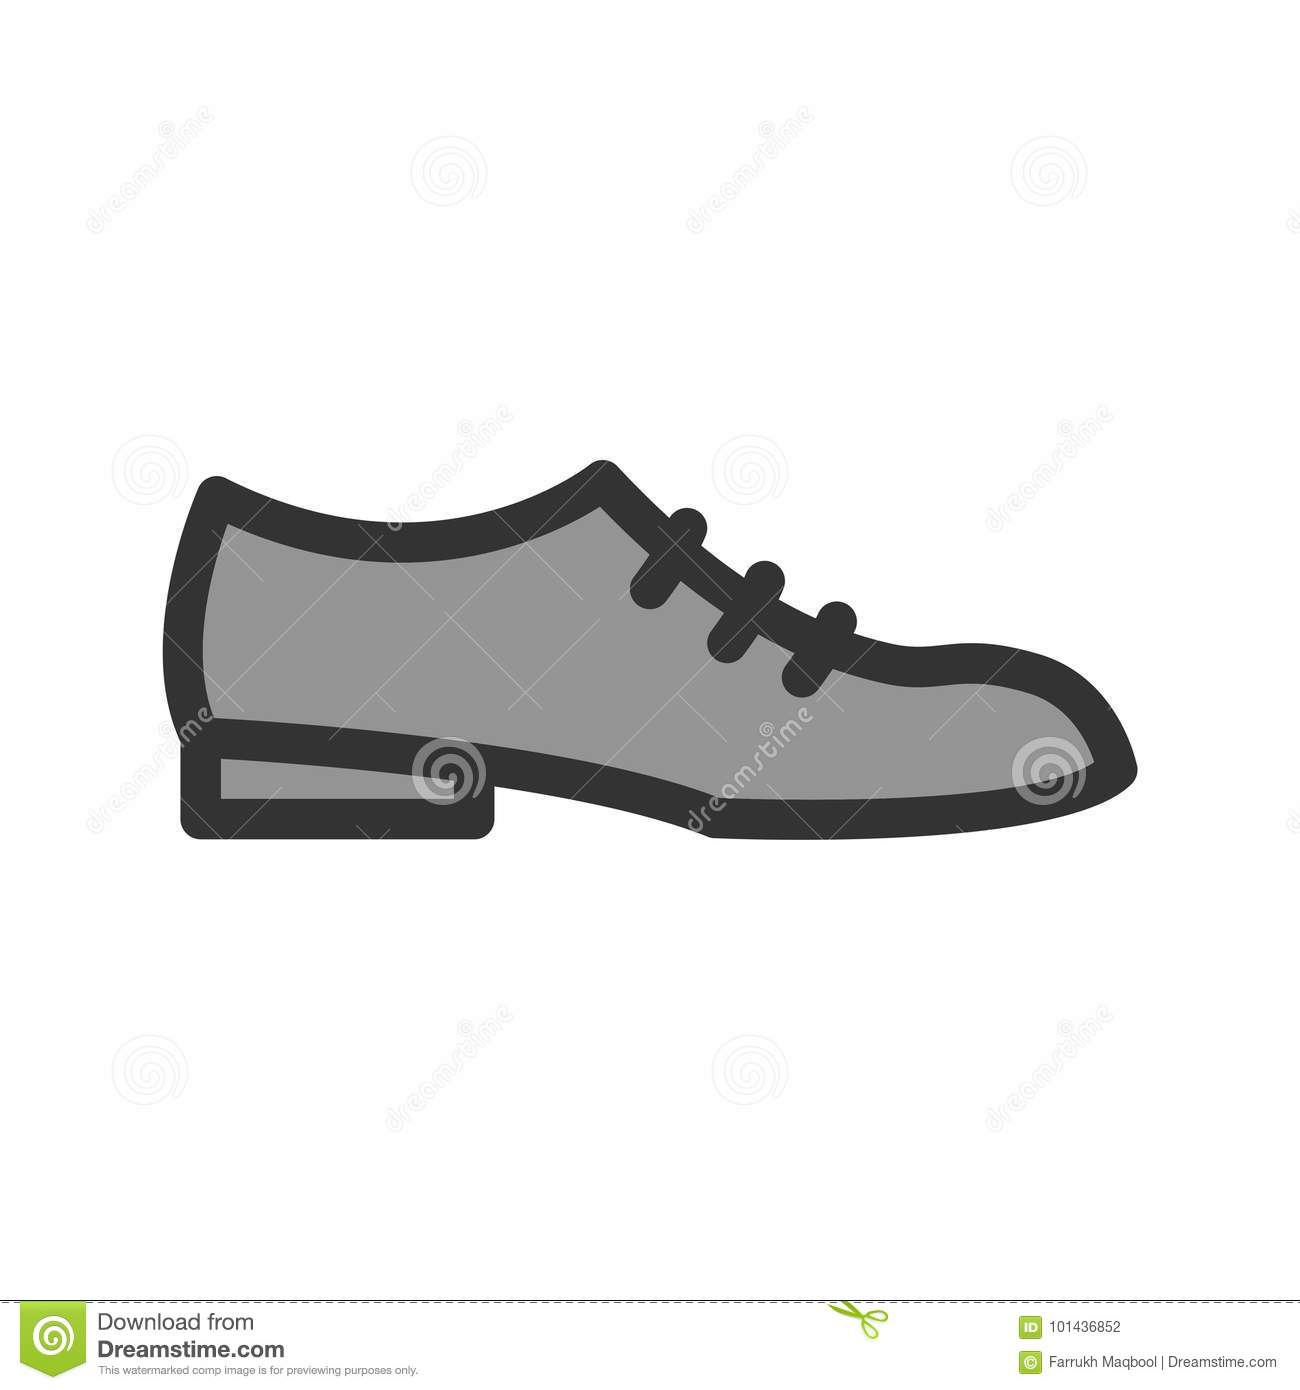 e53d186b1c42f5 Formal Shoes stock vector. Illustration of style